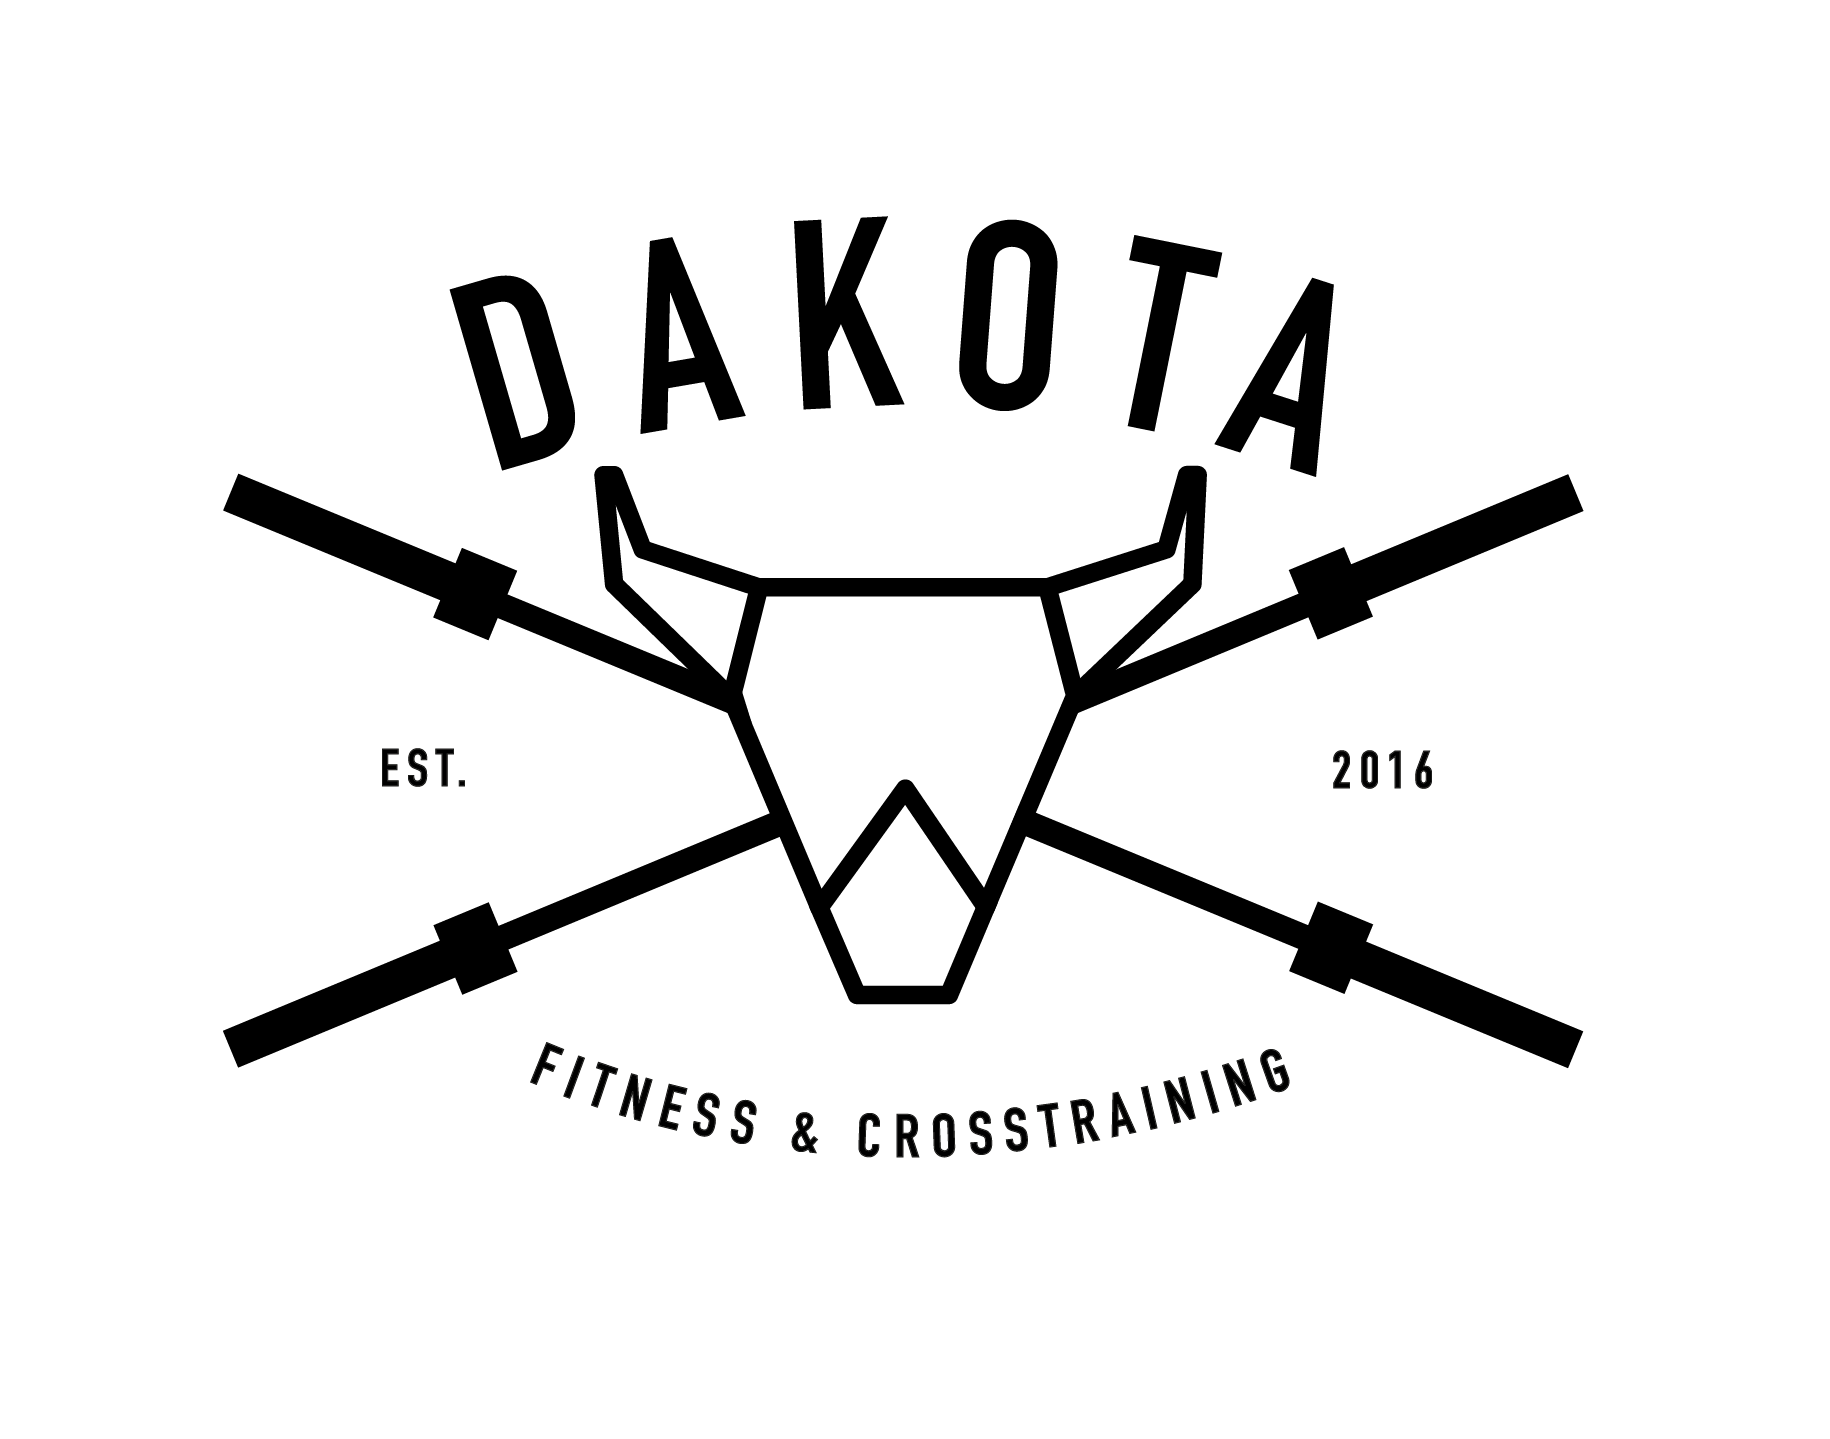 Dakota fitness